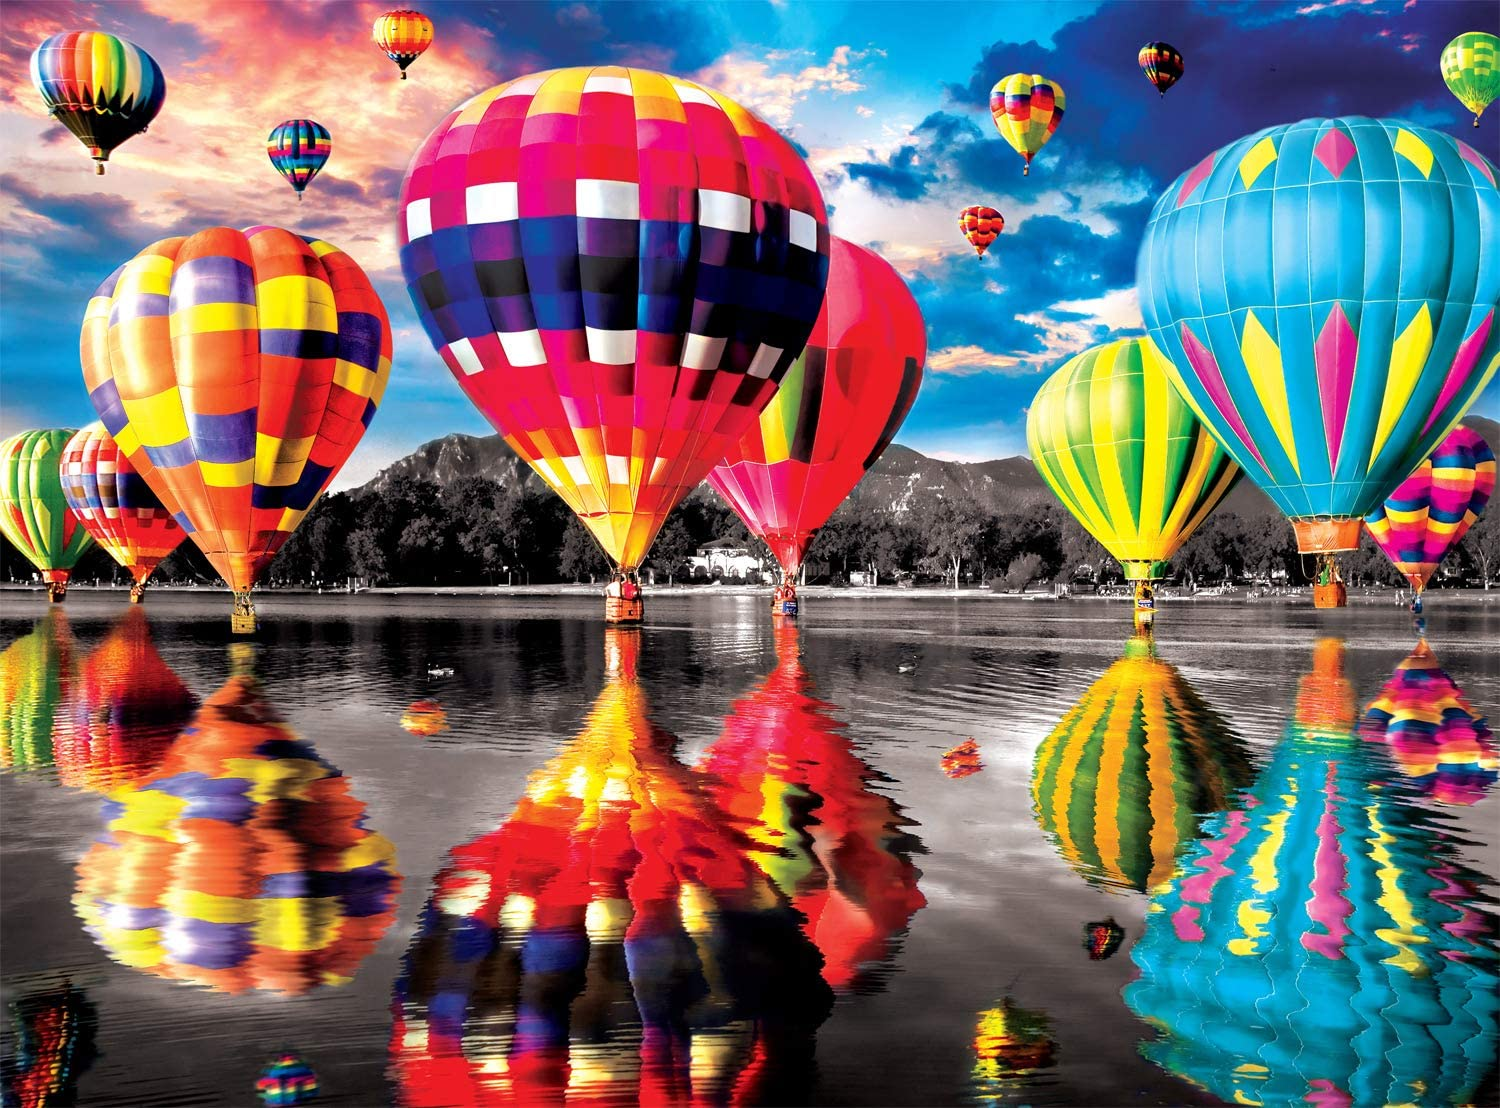 Balloon Dream Balloons Jigsaw Puzzle